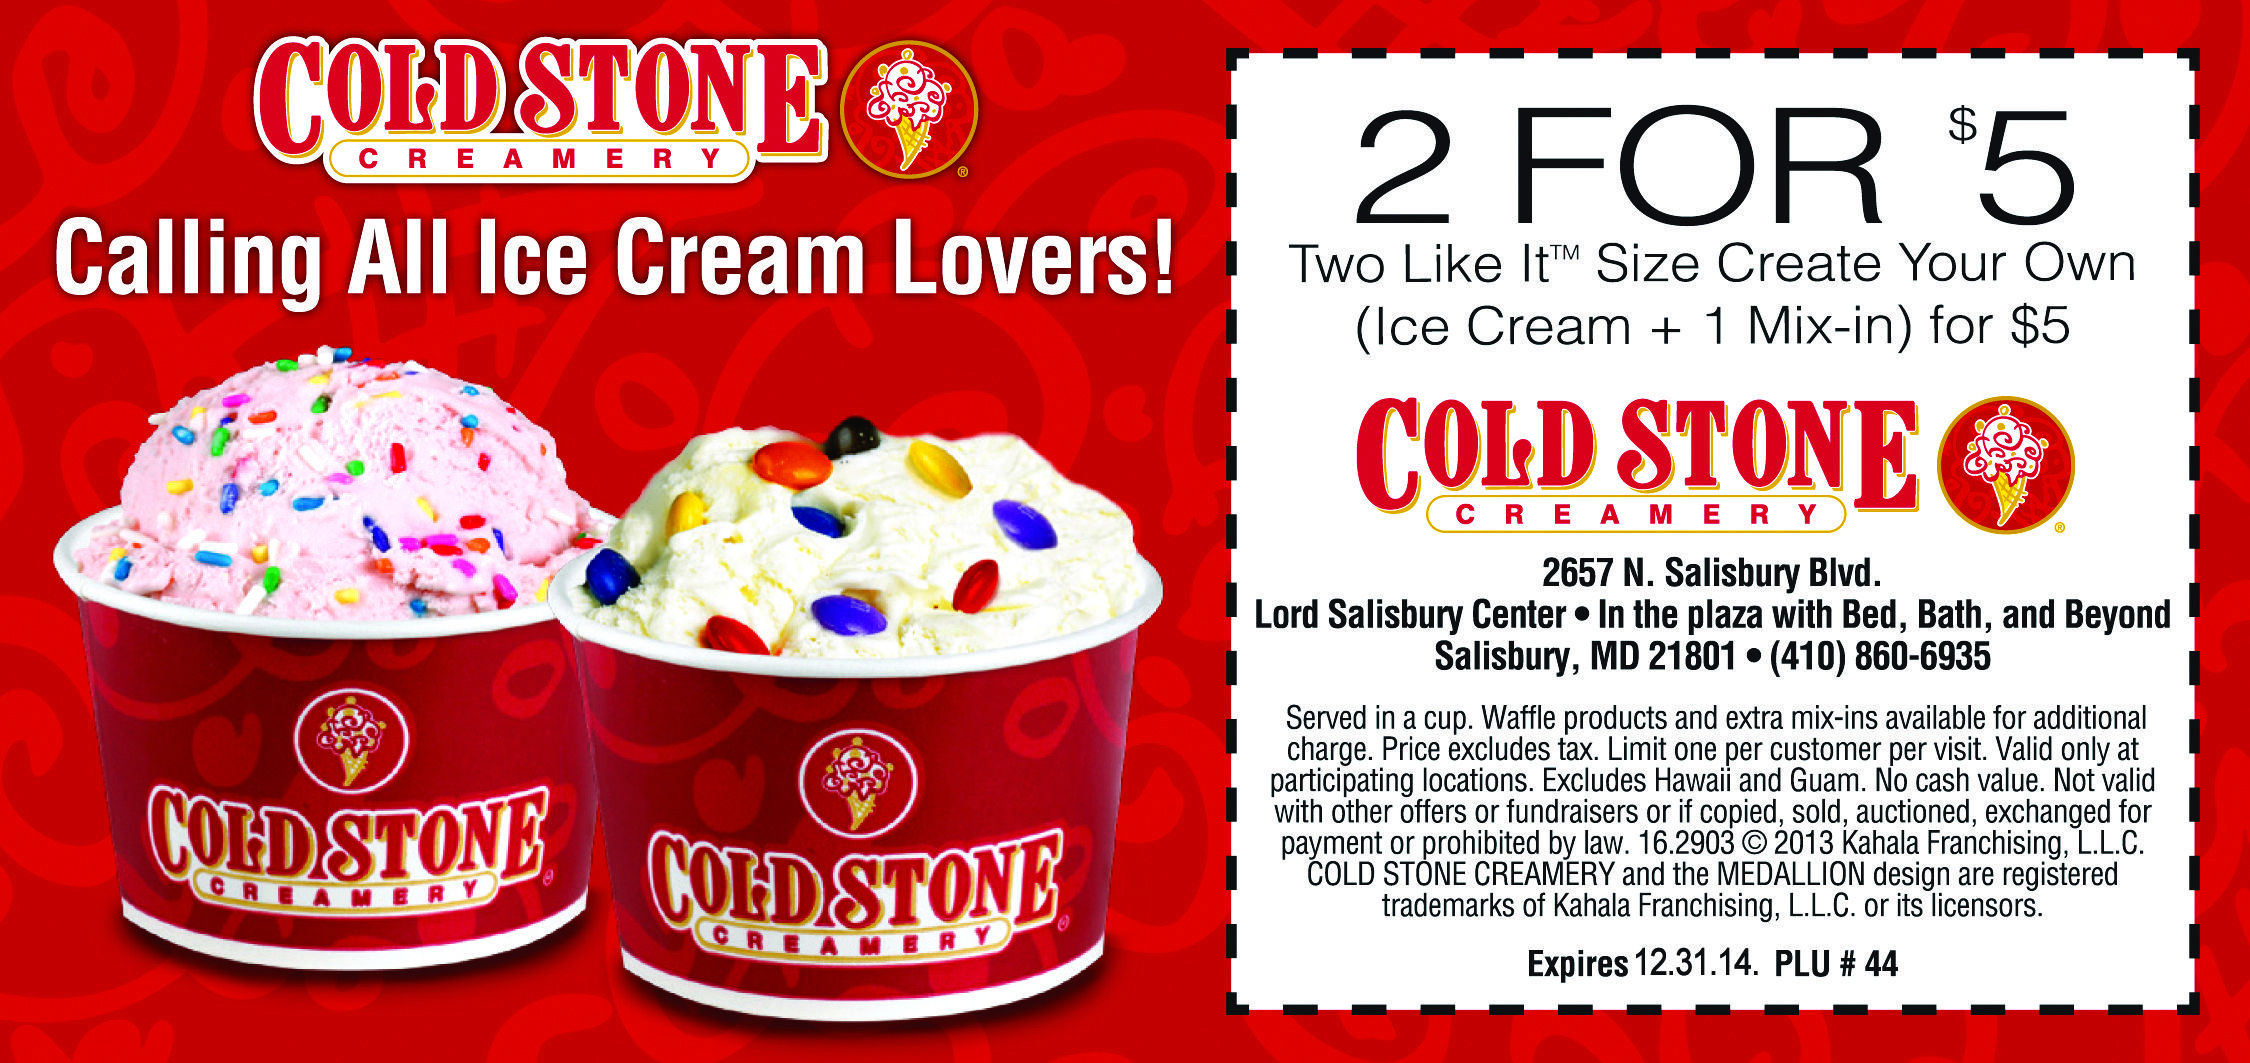 photograph regarding Cold Stone Printable Coupon named Pin upon Frugals Discount coupons: Printable Discount coupons for Eating places